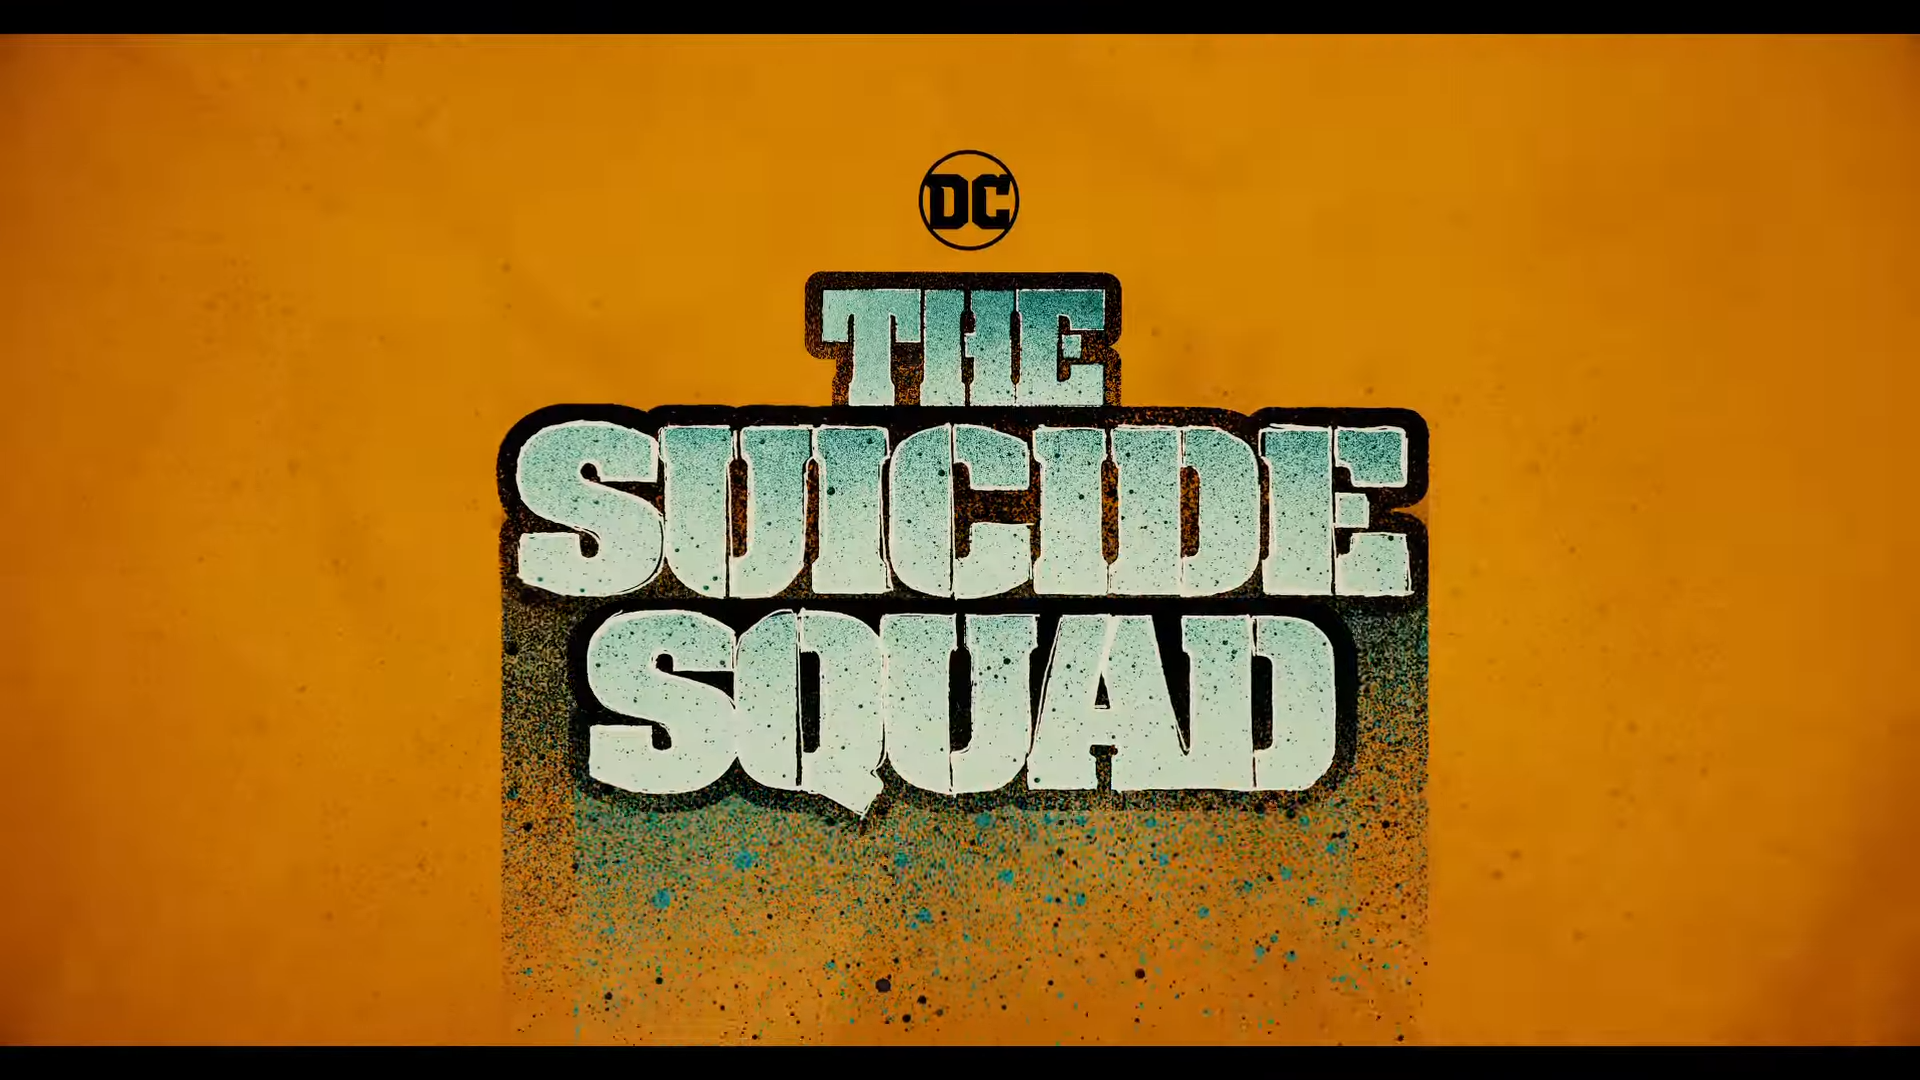 THE-SUICIDE-SQUAD-Rebellion-Trailer-2-19-screenshot-91